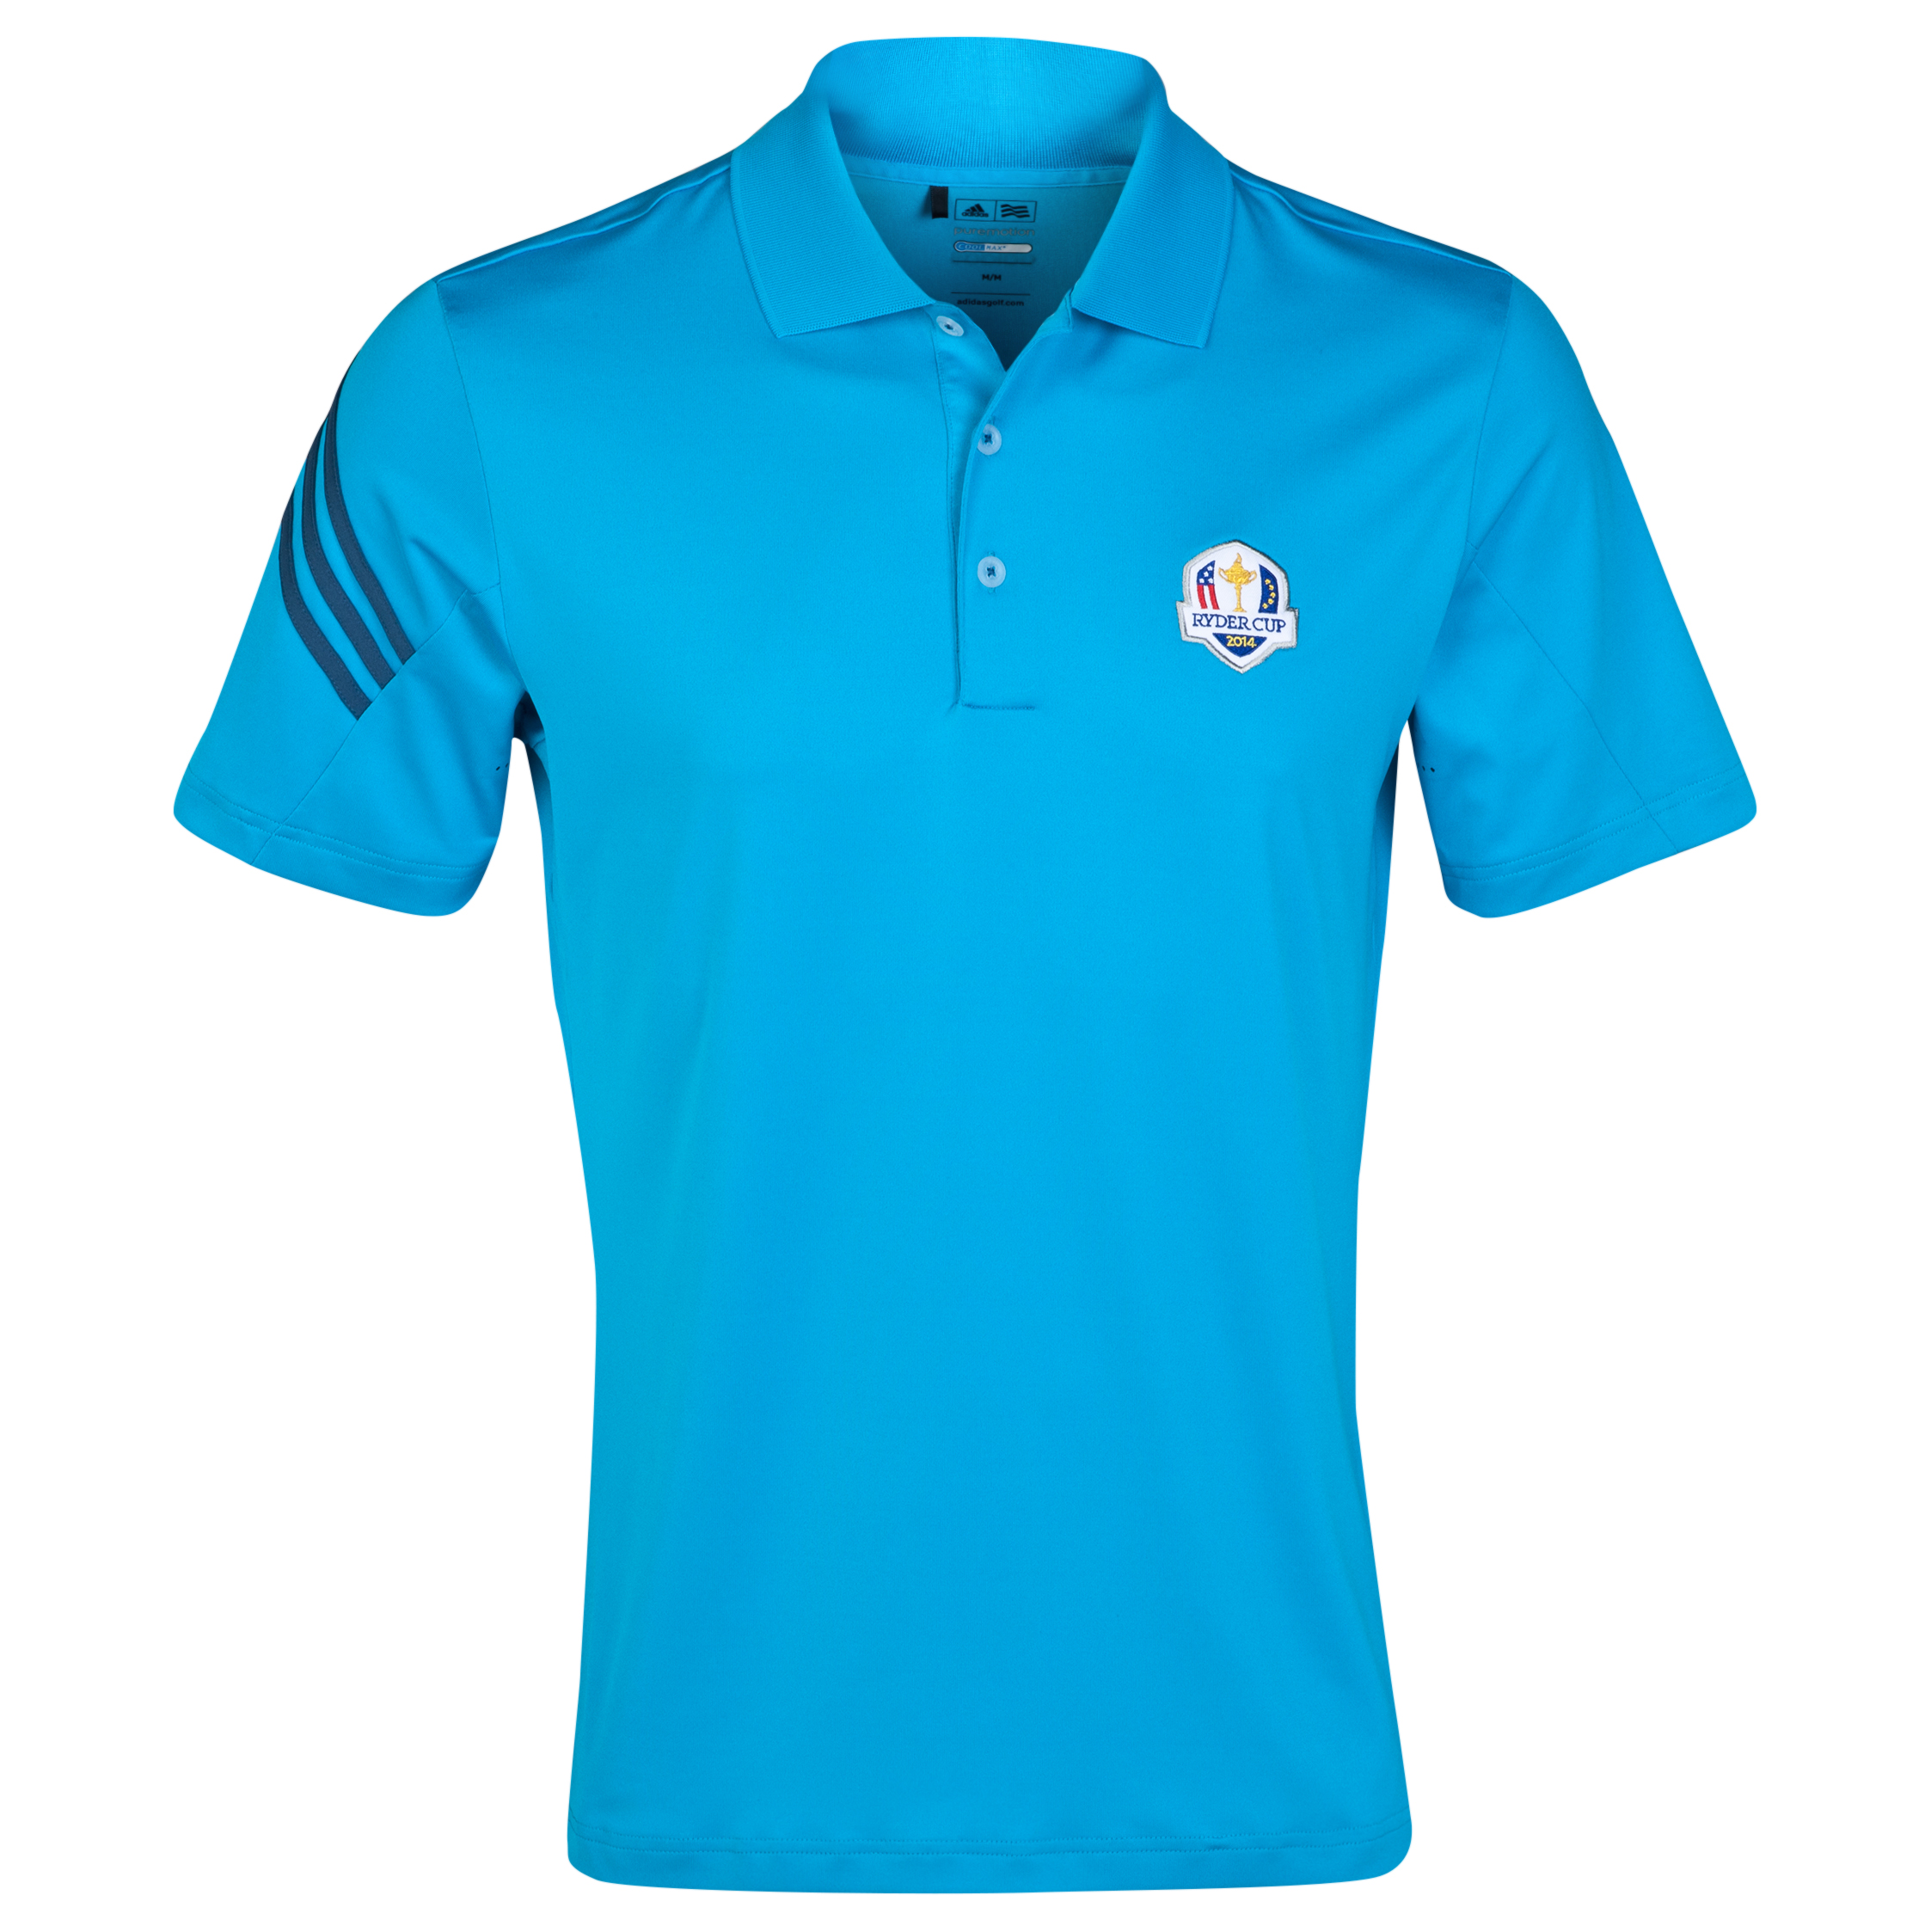 The 2014 Ryder Cup ClimaLite 3-Stripes Polo Sky Blue